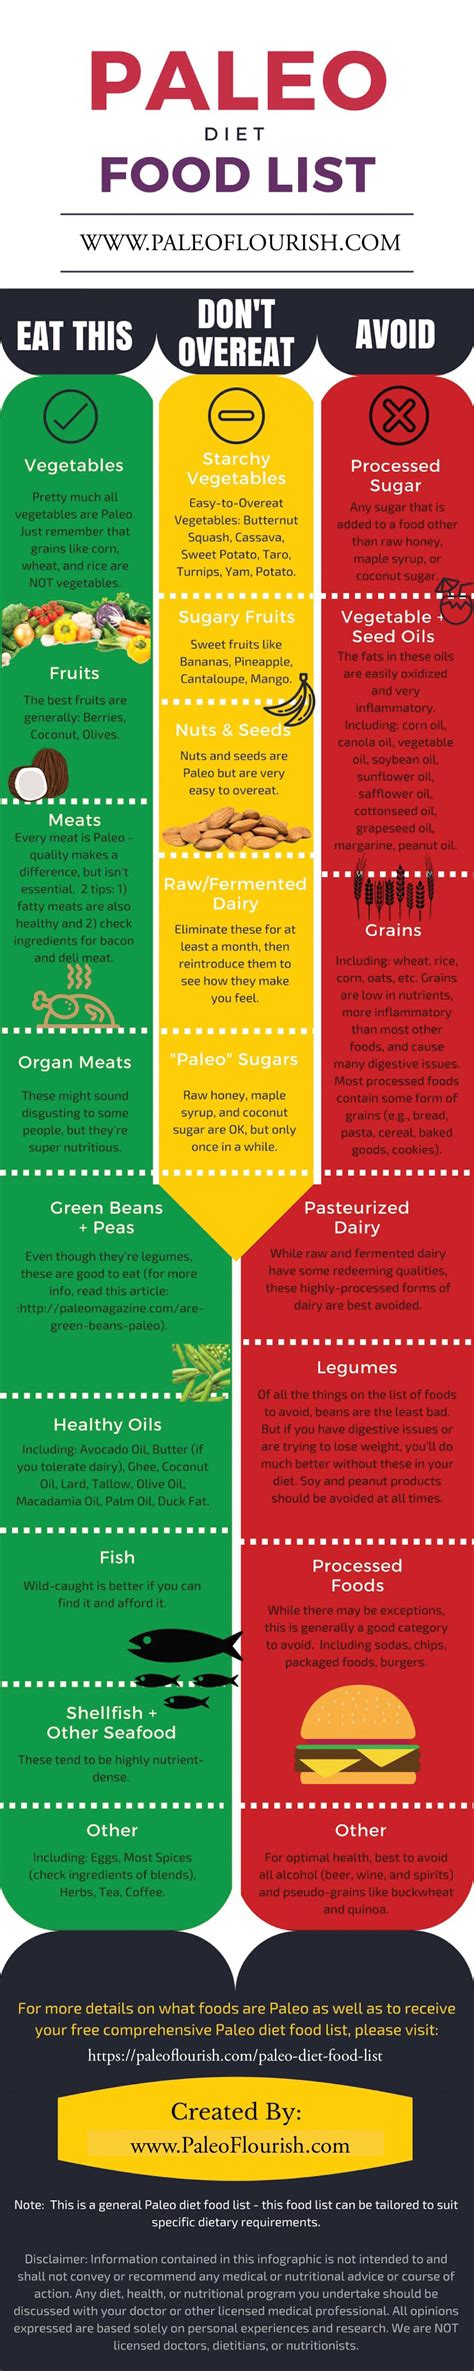 cuisines references info paleo infographic bowls of